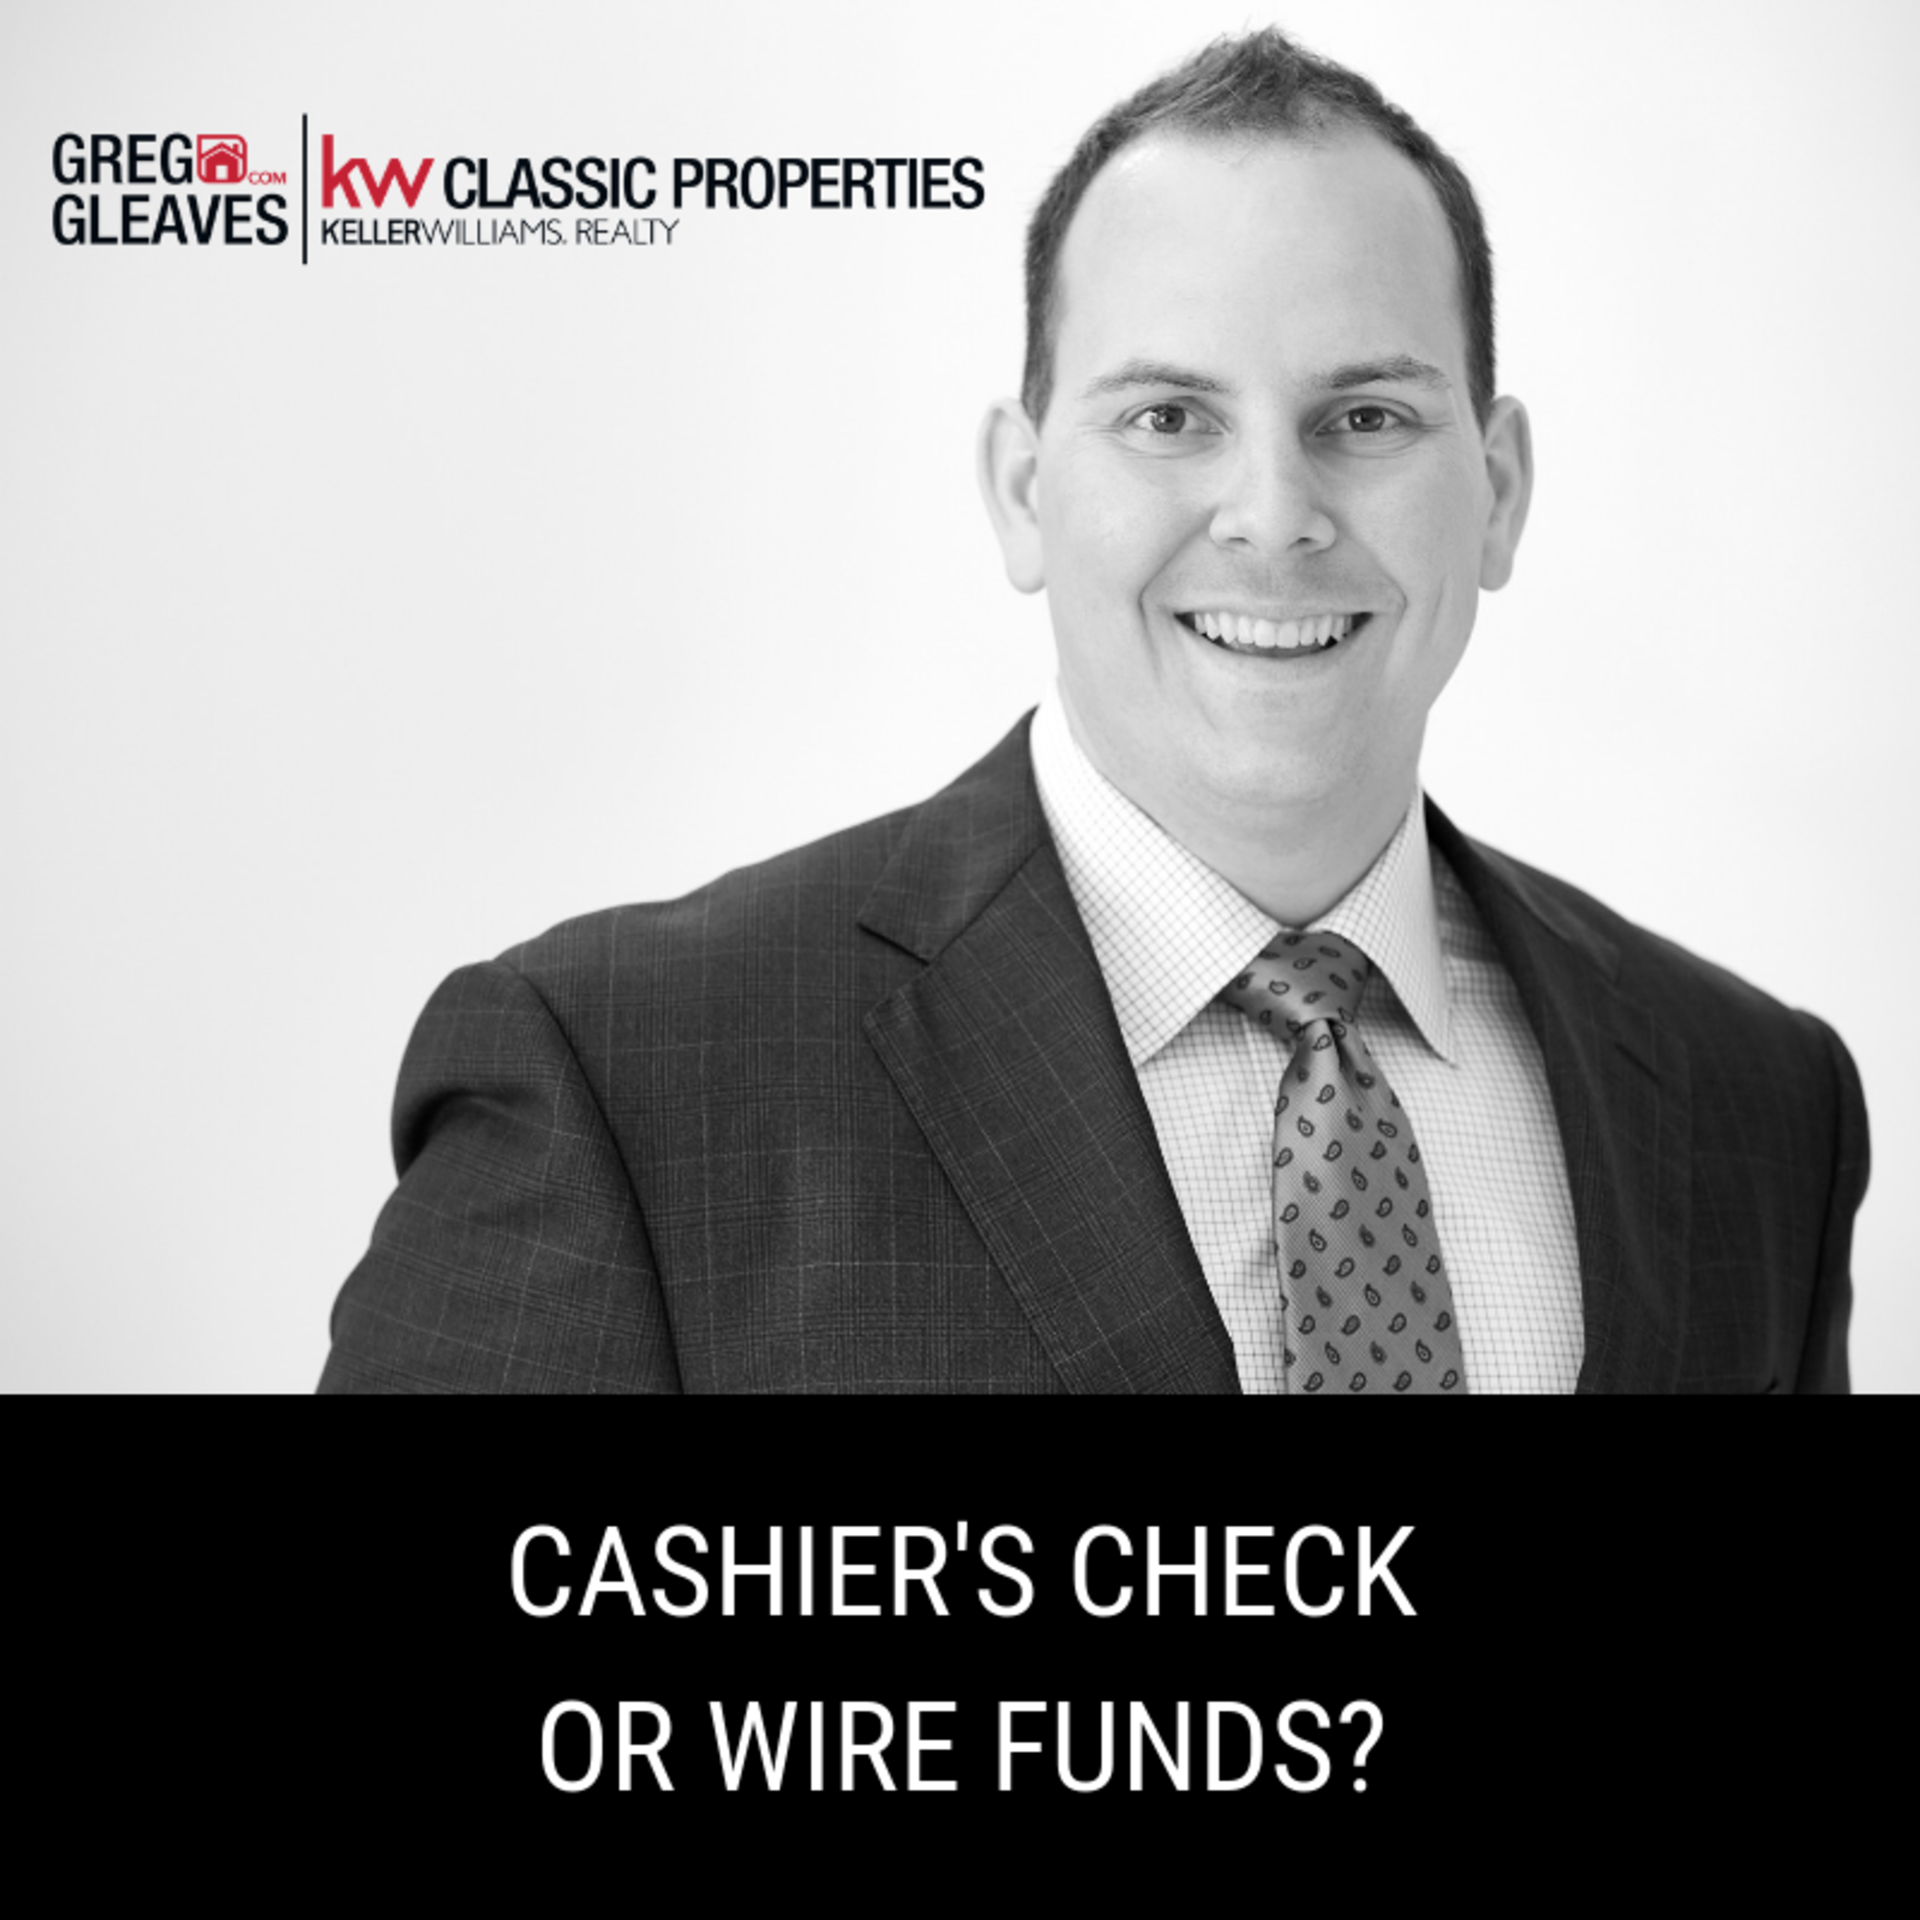 Cashier's Check Or Wire Funds?